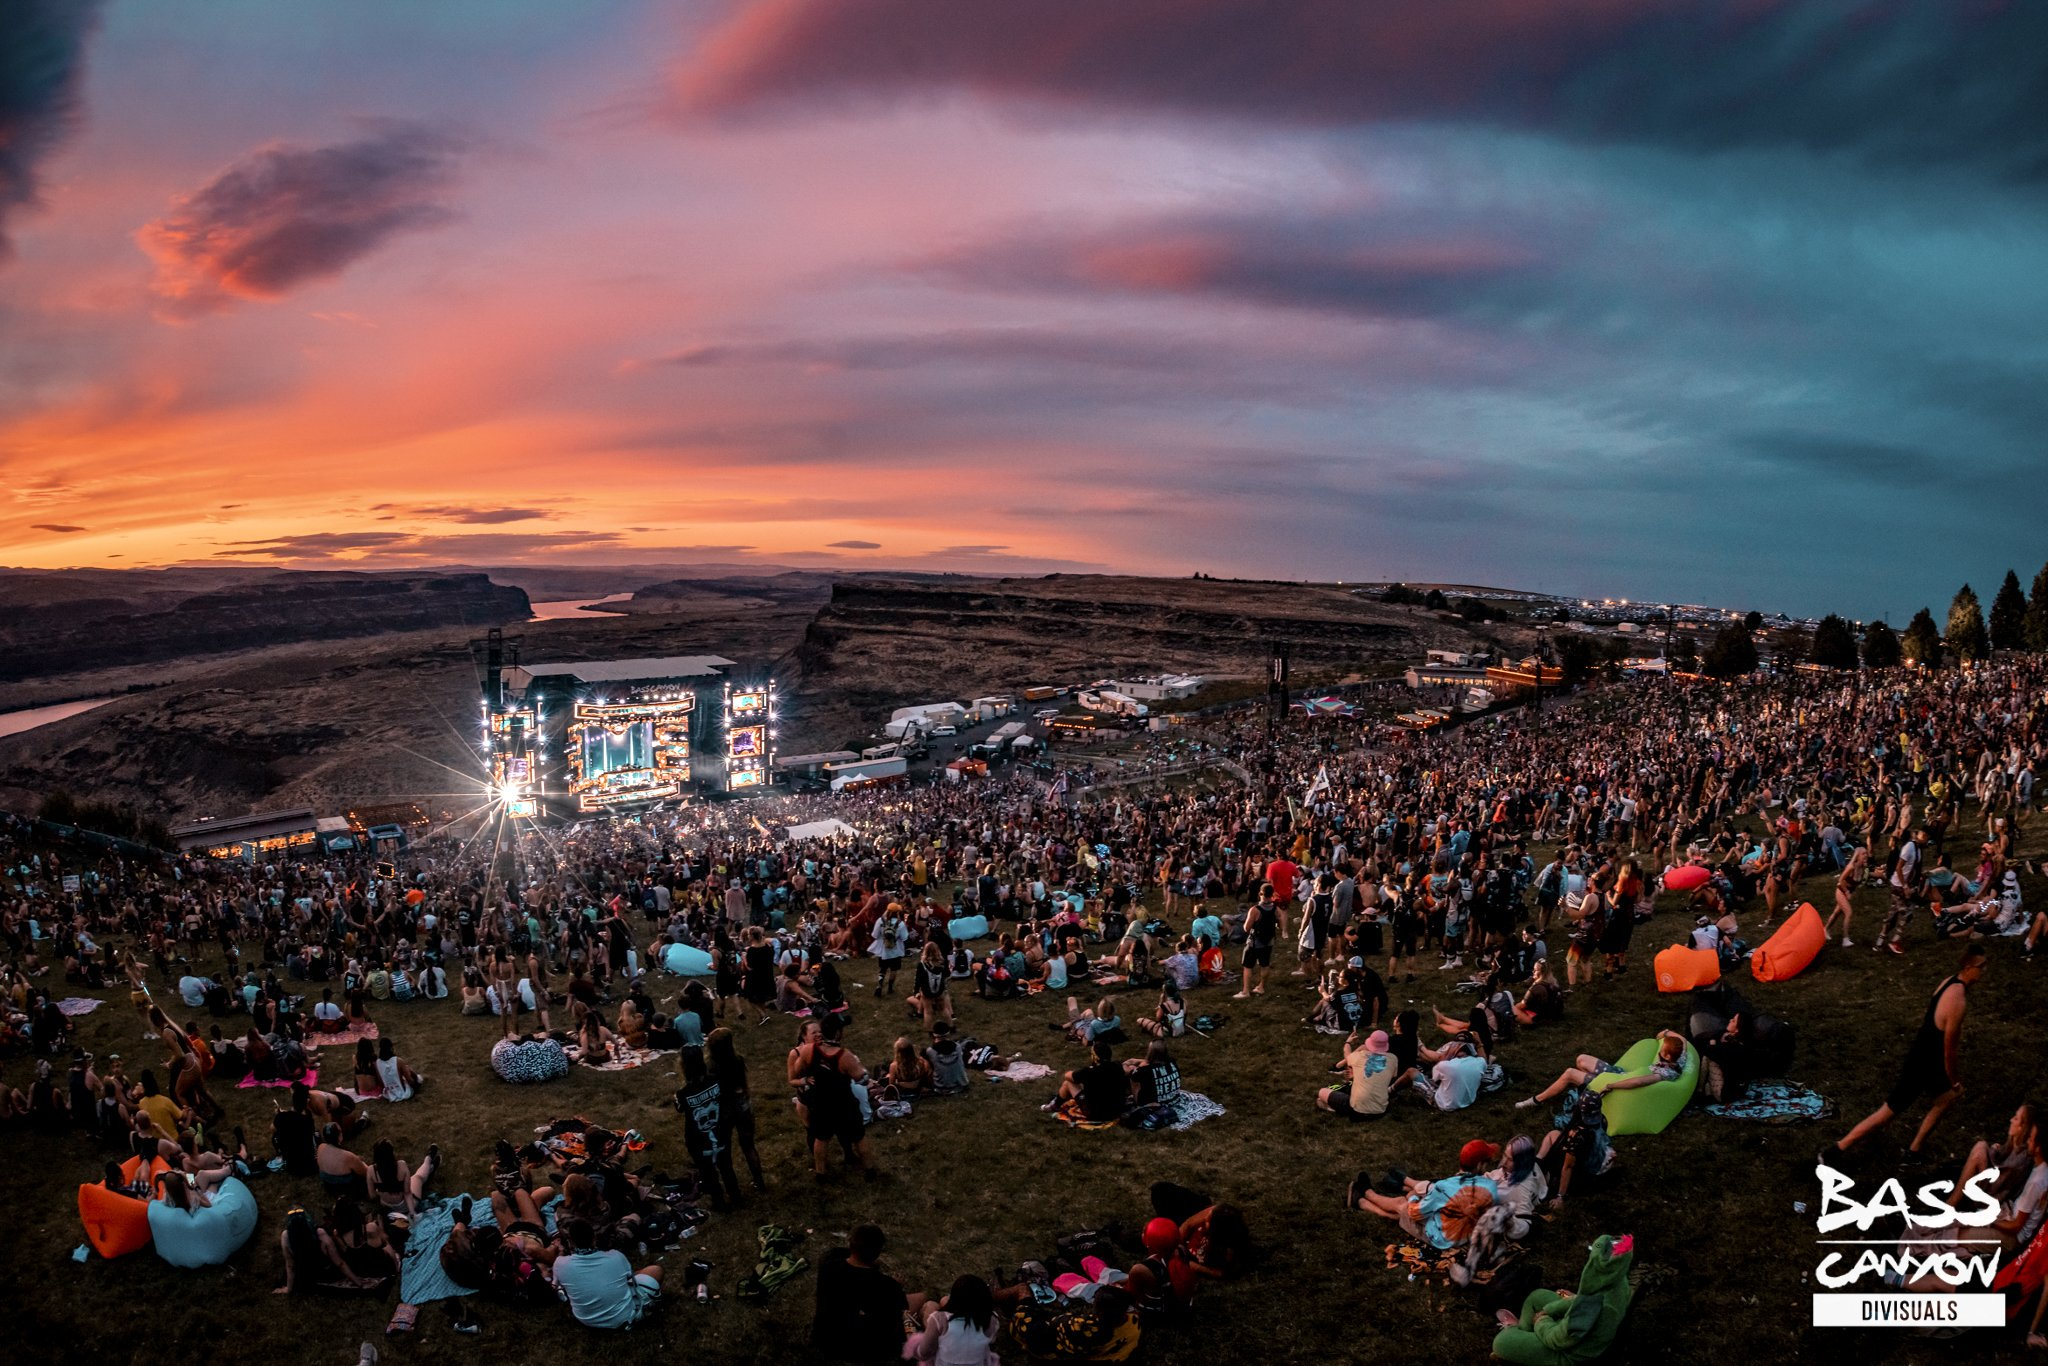 Bass Canyon 2019 photos - Friday